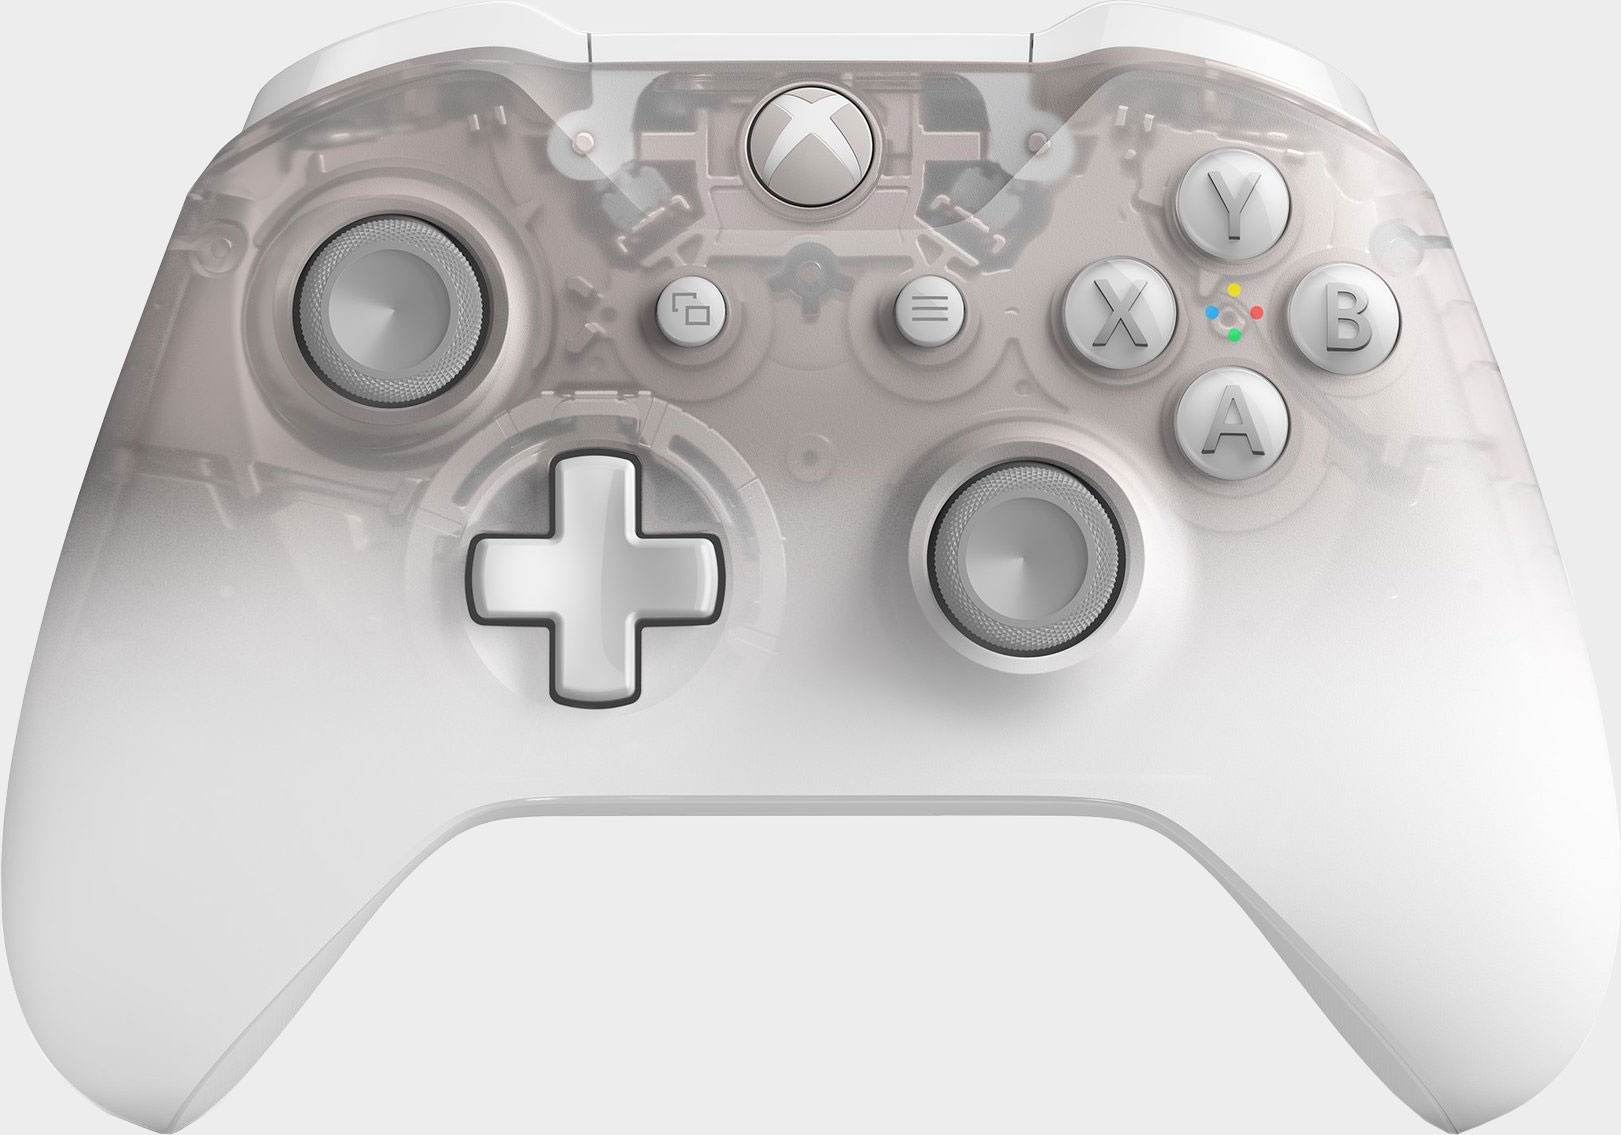 Microsoft's 'Phantom White' Xbox controller is gorgeous and